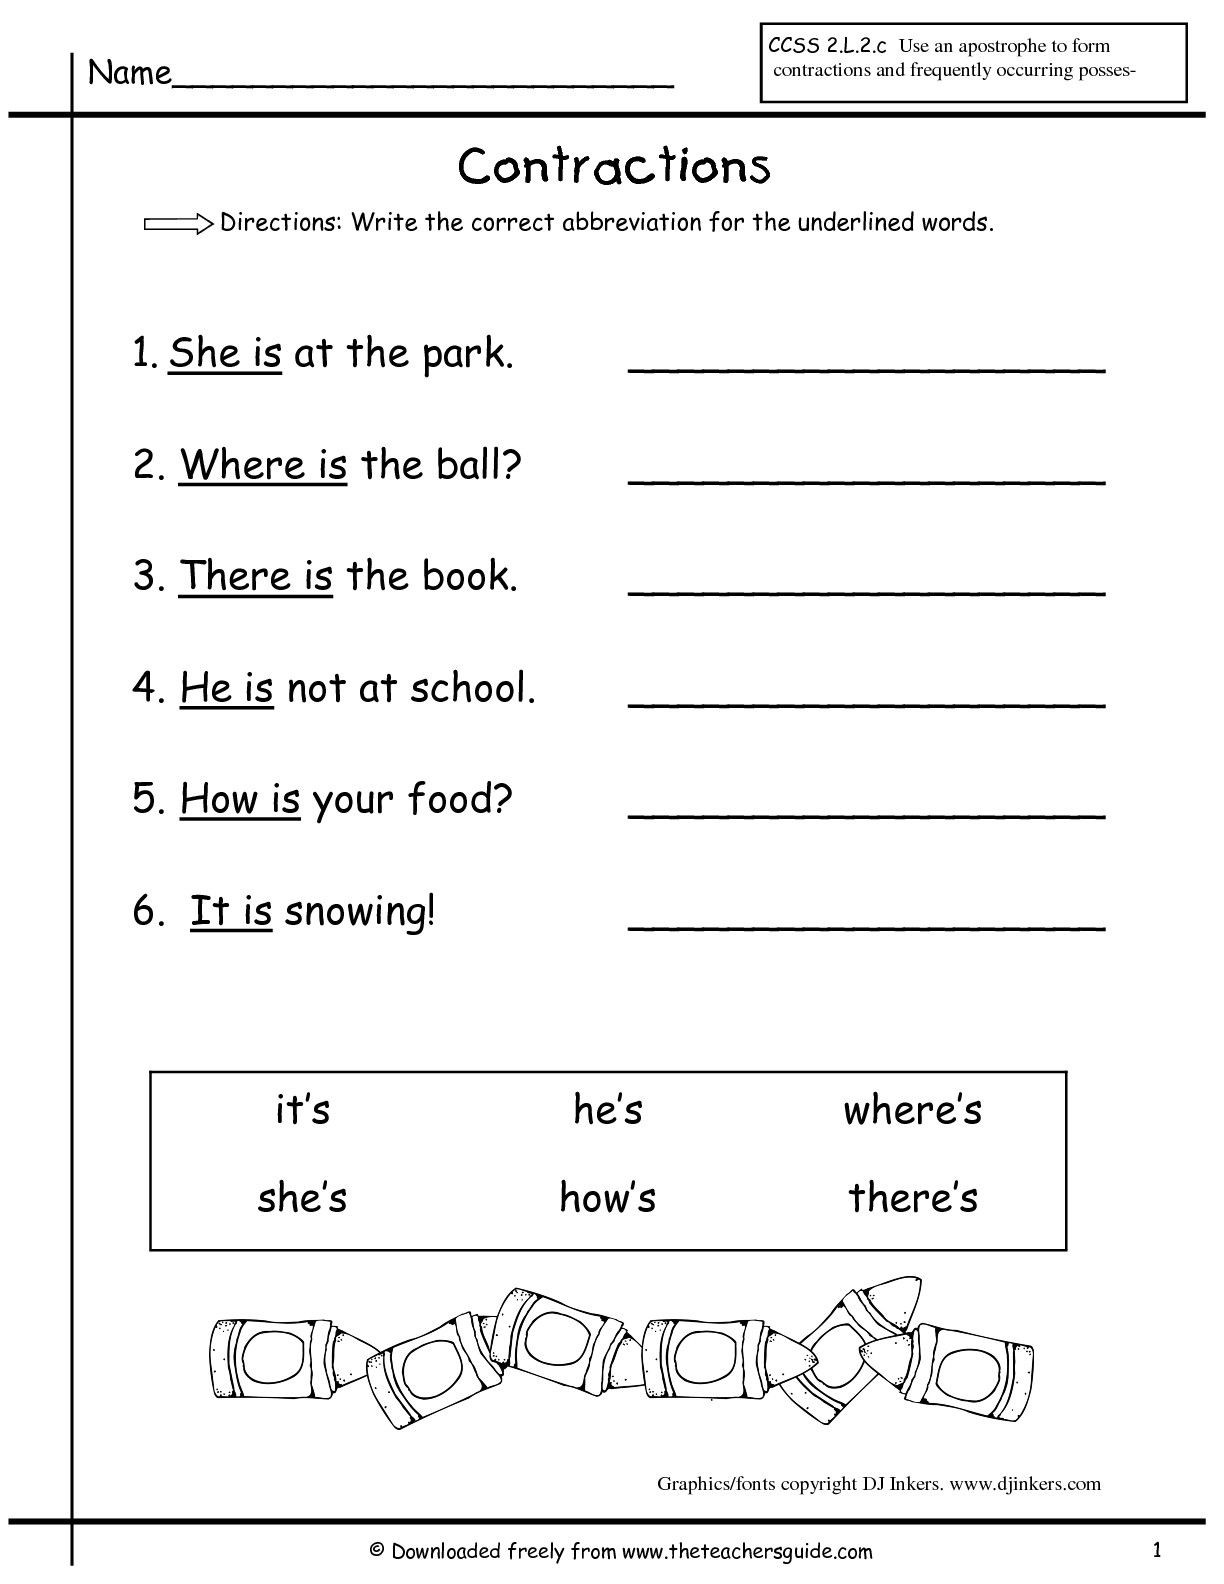 Science Worksheets for 5th Grade Free Science Worksheets for Grade 2 2nd Grade